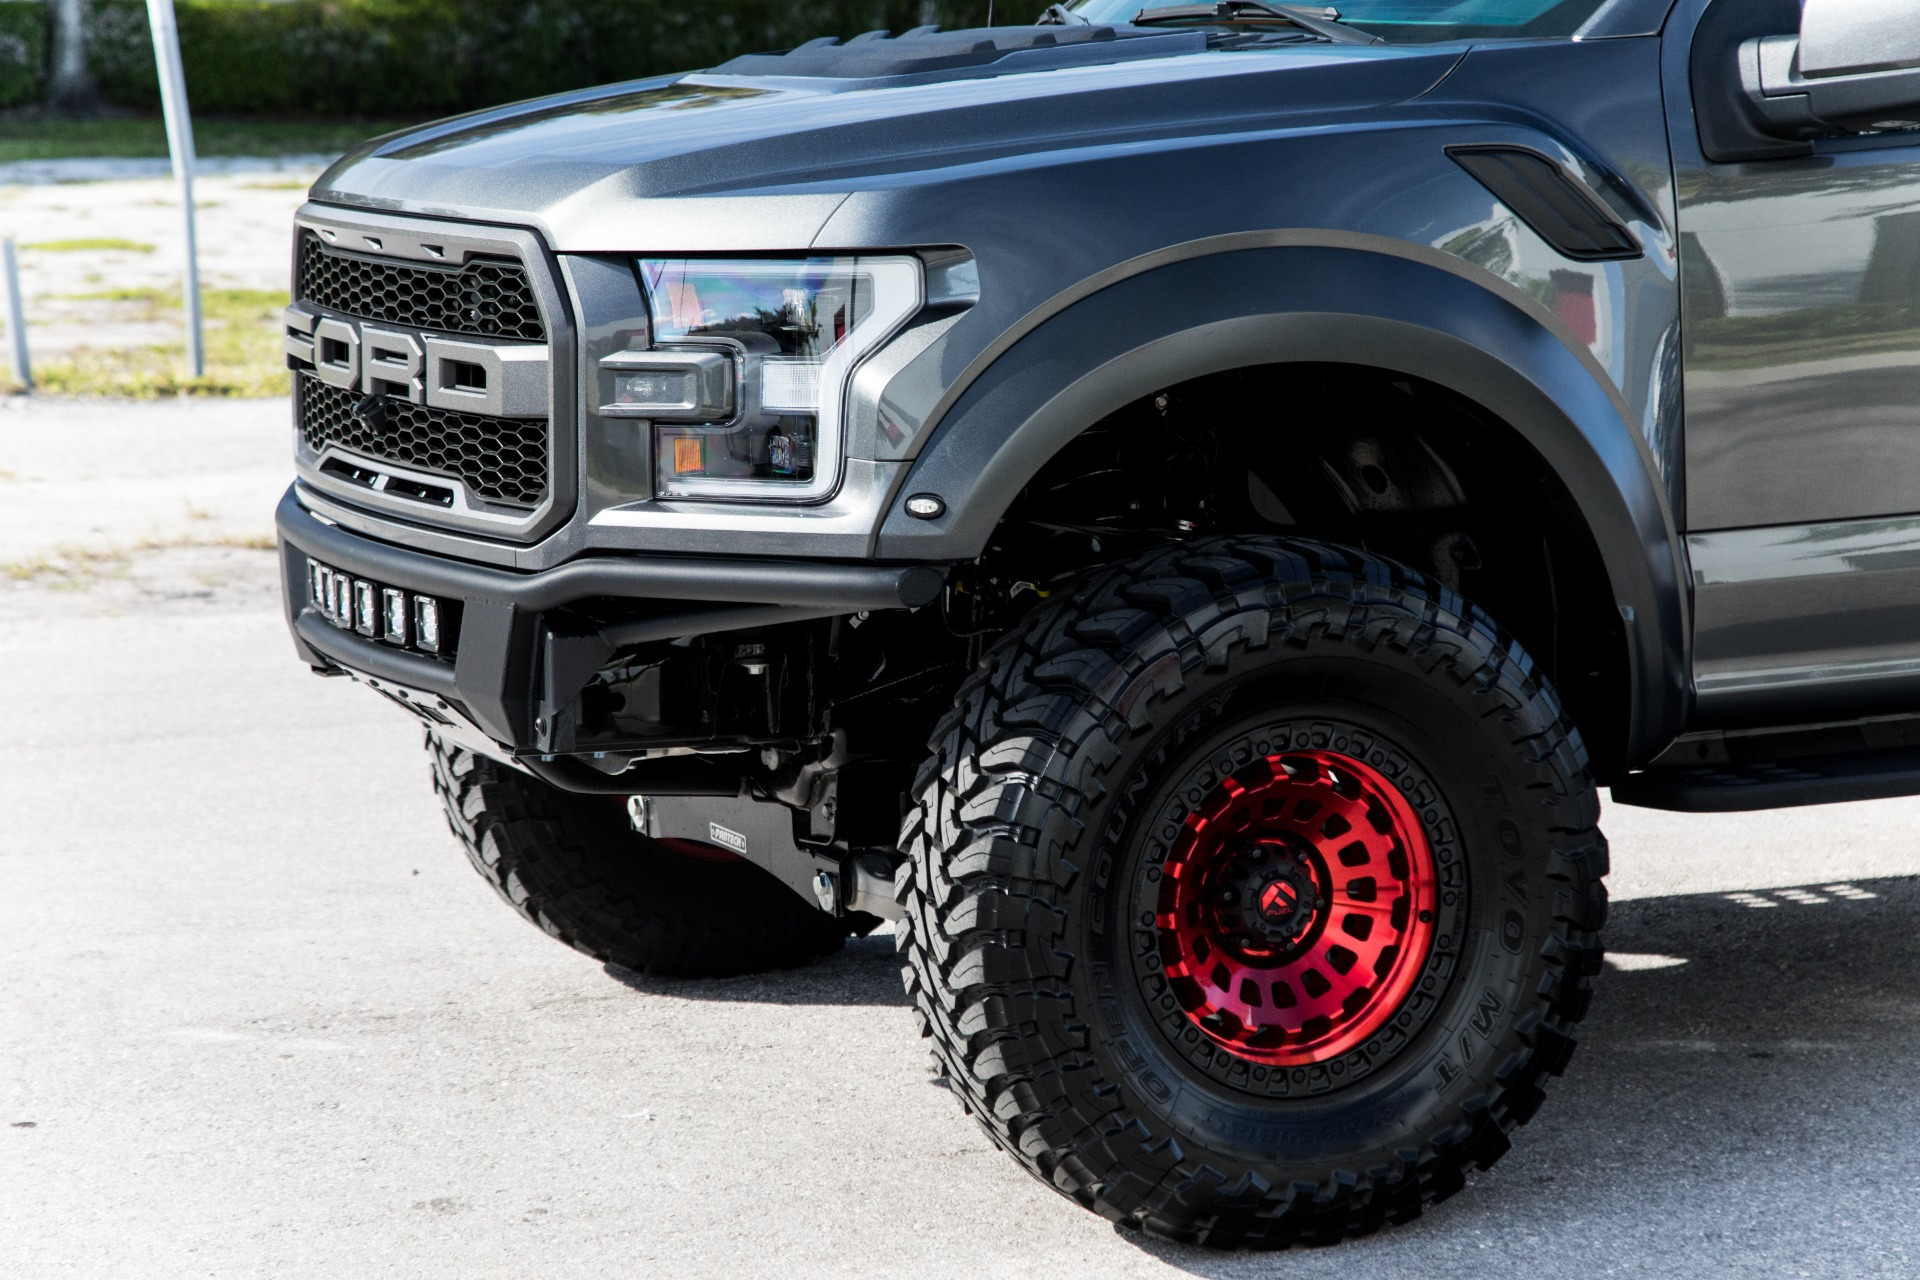 Ford Raptor Used >> Used 2019 Ford F-150 Raptor For Sale ($74,900)   Marino ...